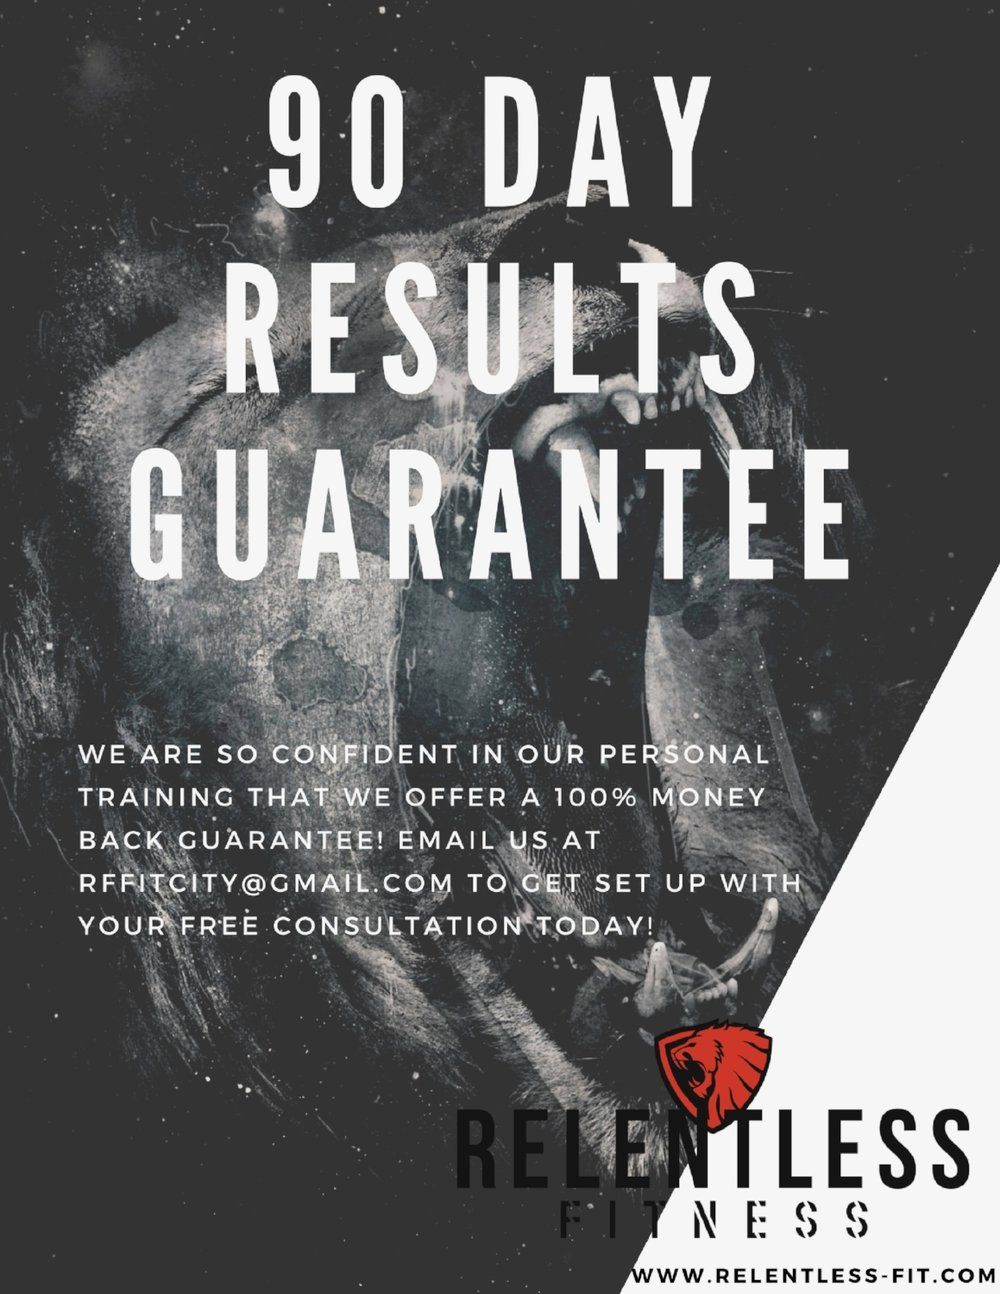 90 day results guarantee.jpg